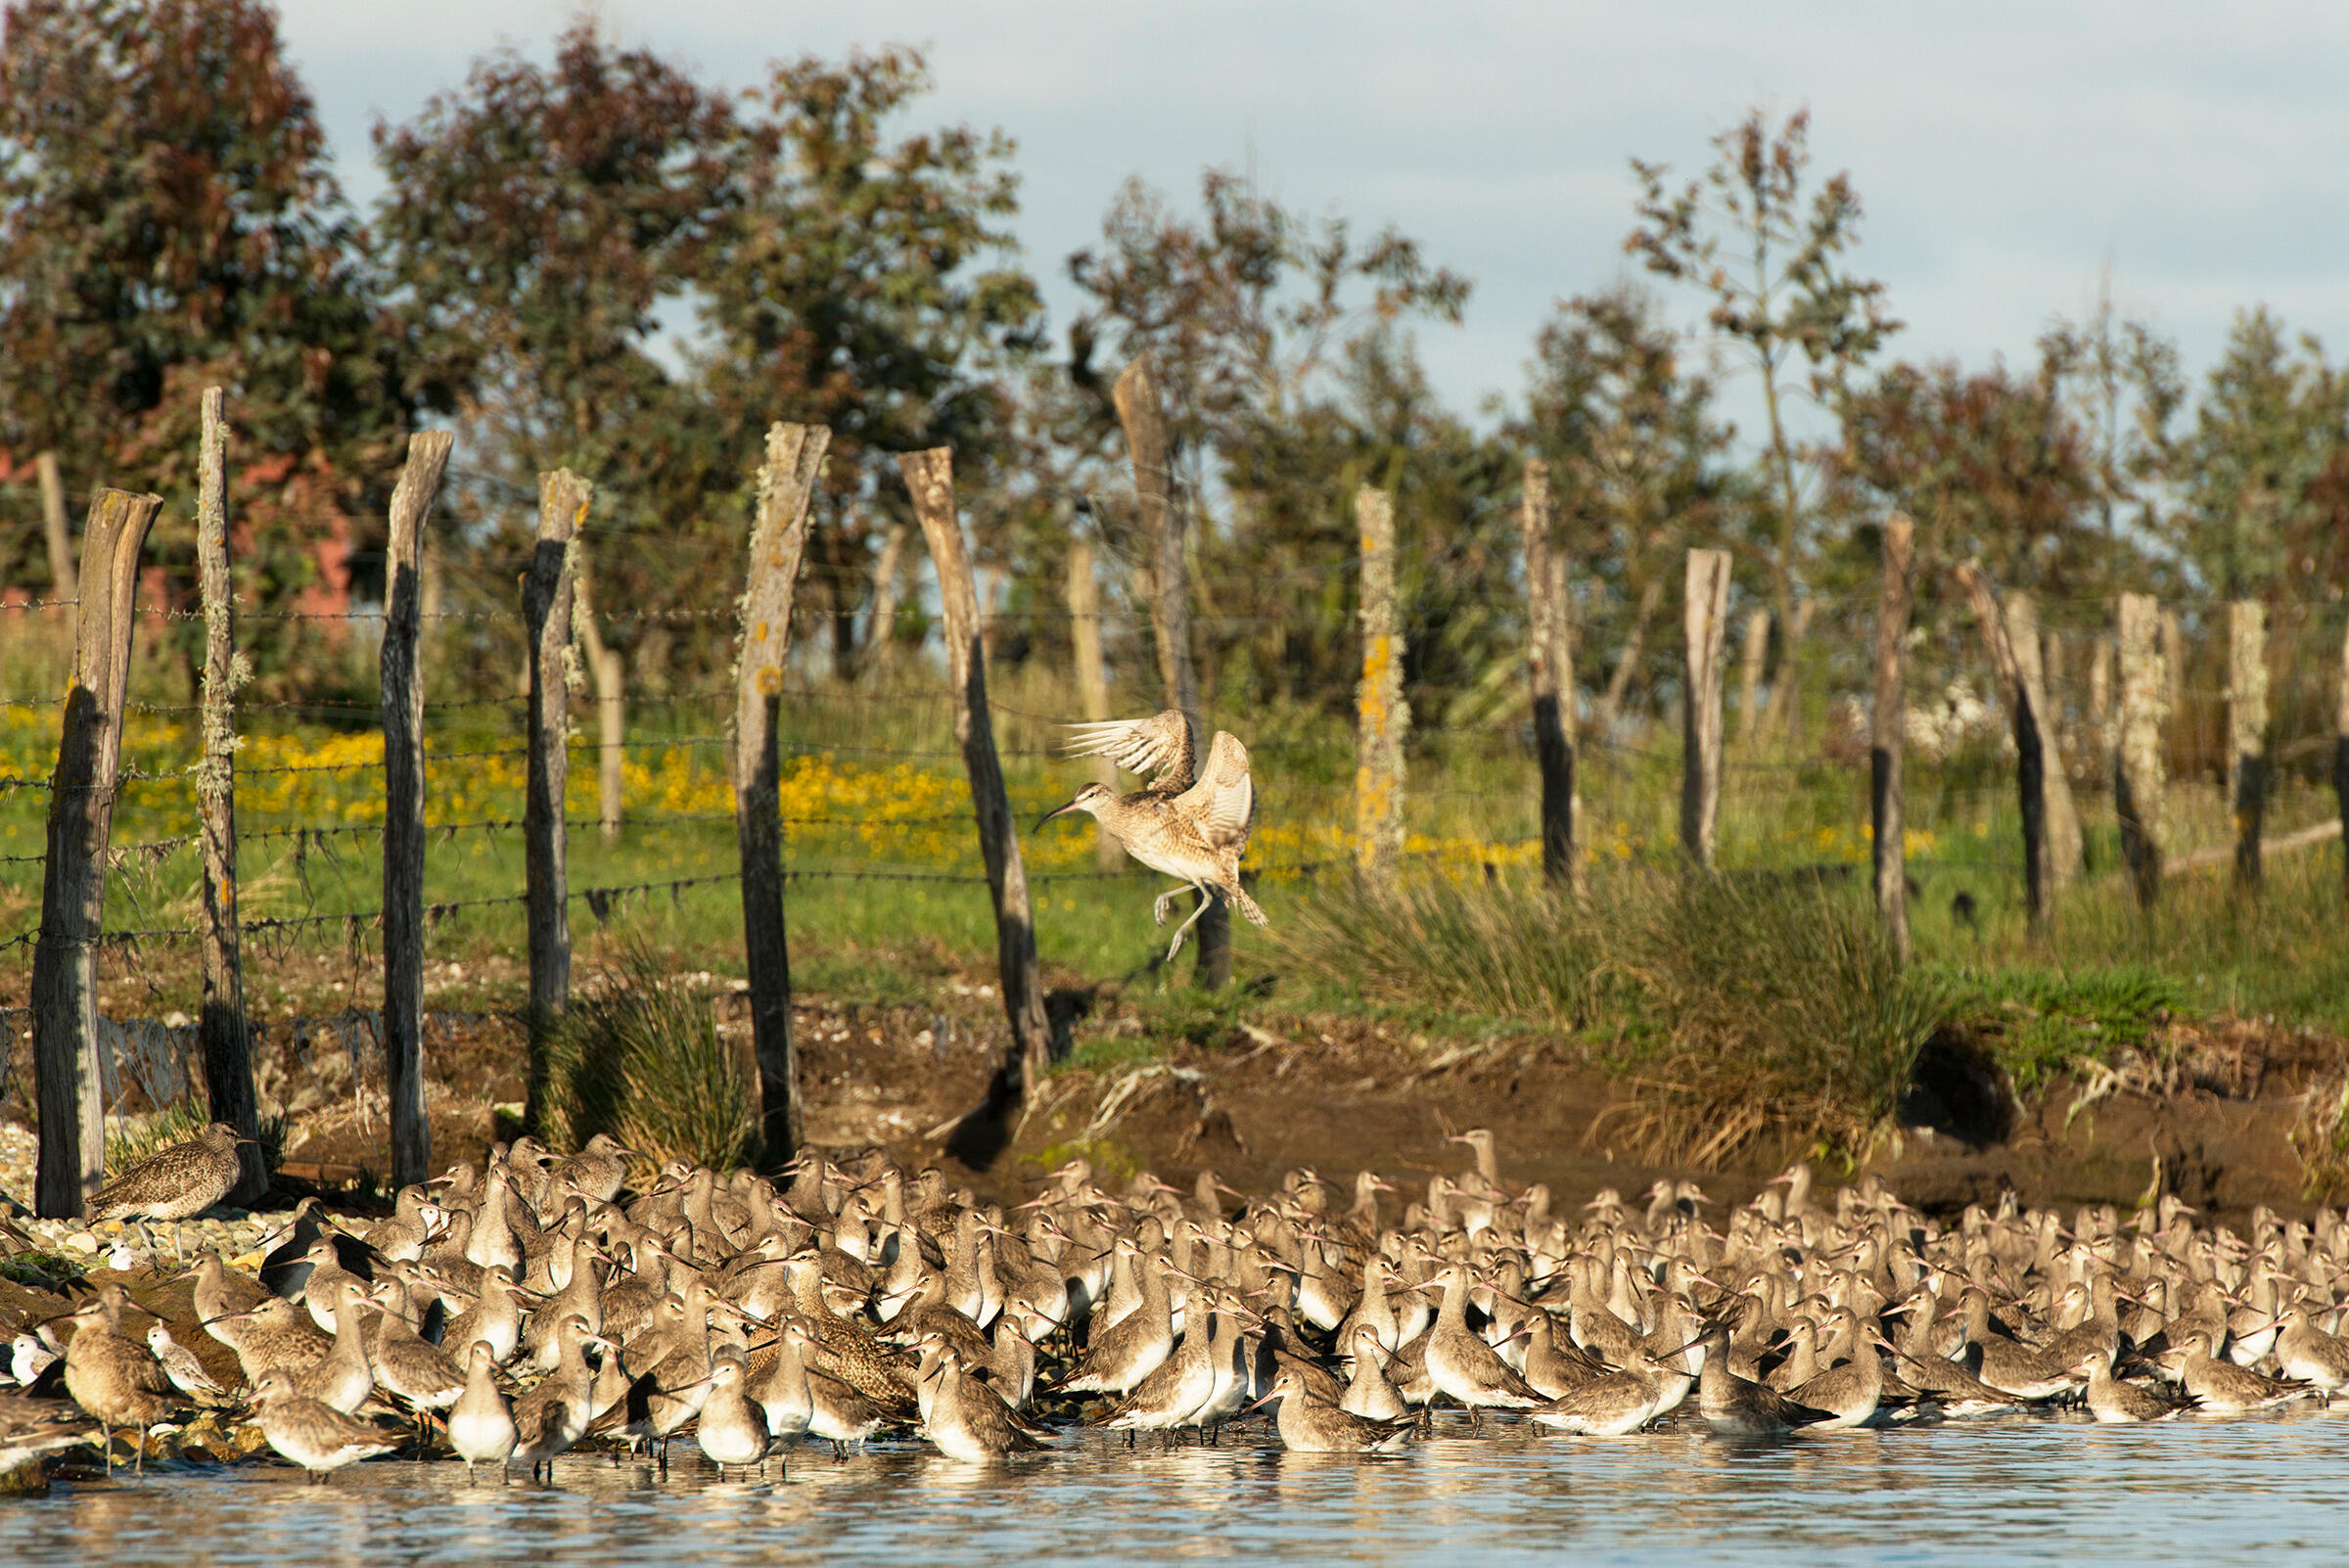 Godwits, Whimbrels, and Sanderlings. Chris Linder/iLCP